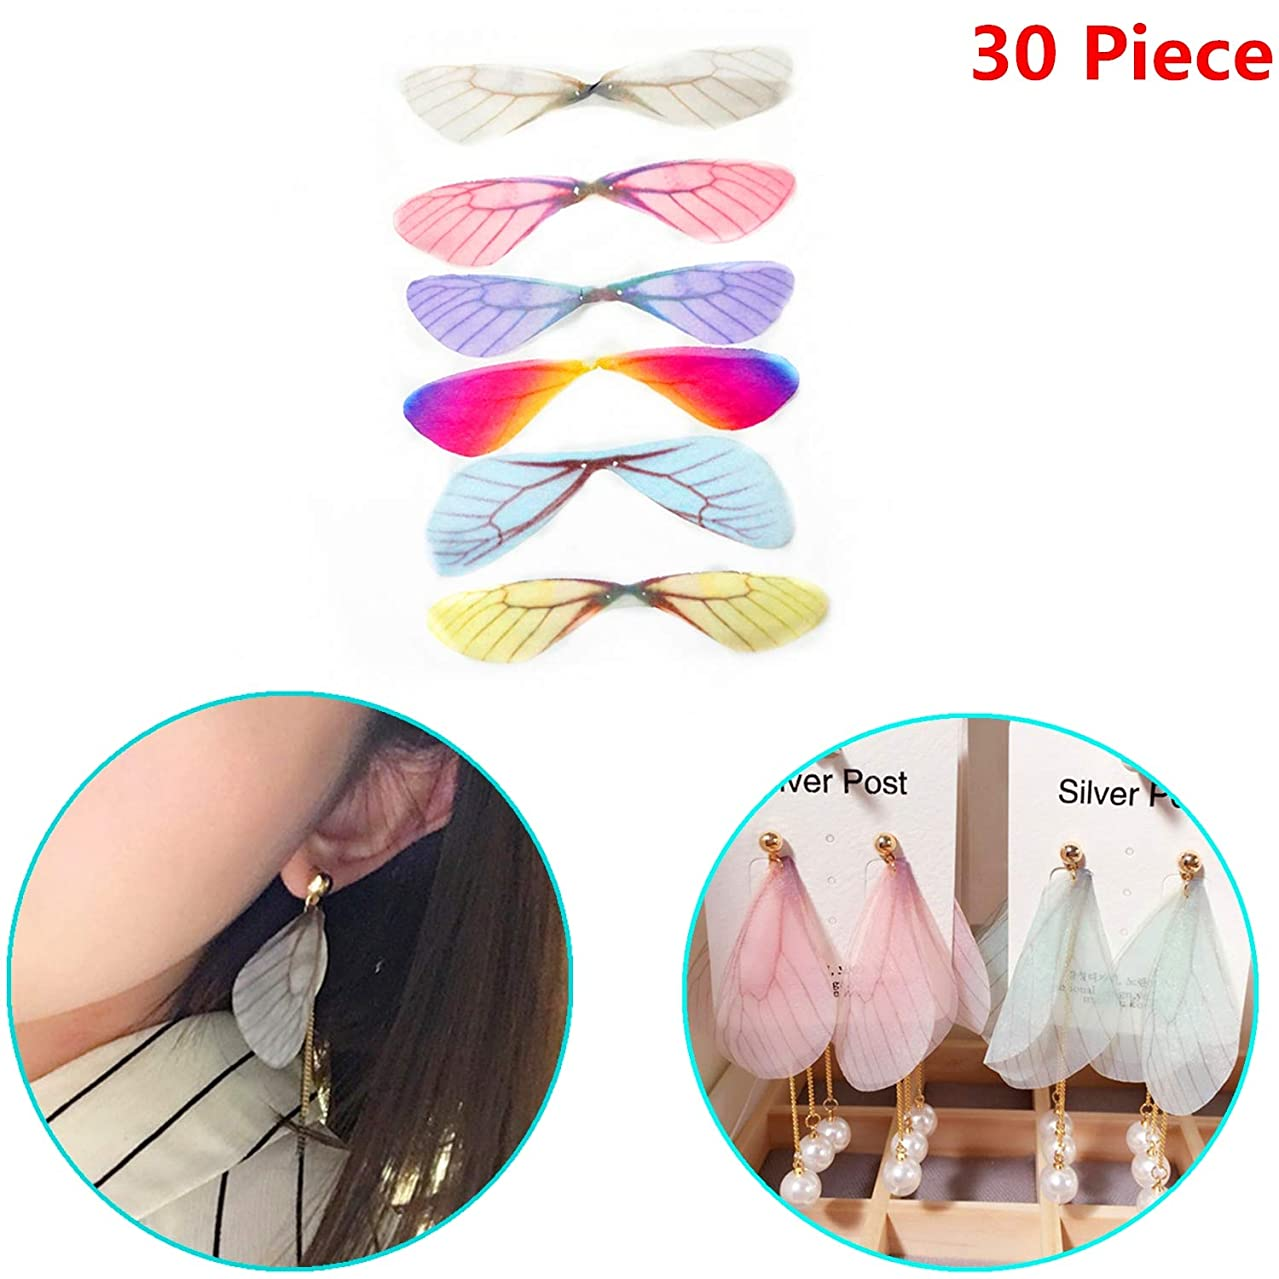 Xinhongo 30 Piece Fashion Dragonfly Wings Charms for DIY Butterfly Dragonfly Wings Jewelry Crafts Making Earring Necklace Hair Clip Decoration (6 Color)